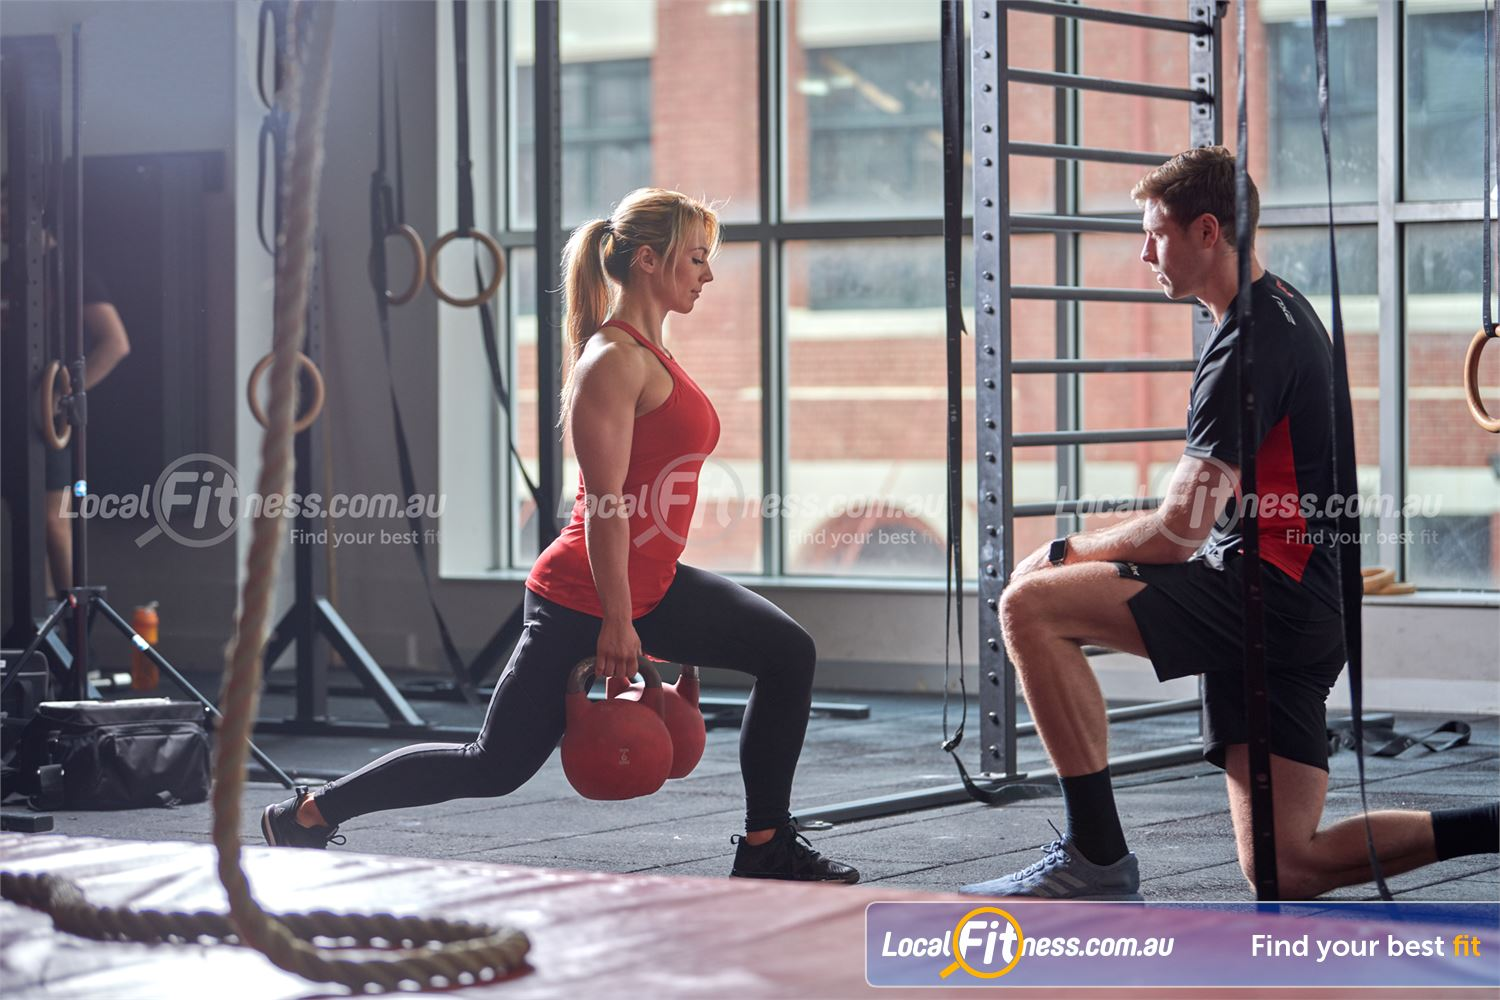 Fitness First Rockdale Improve your stability and strength with kettlebell lunges.